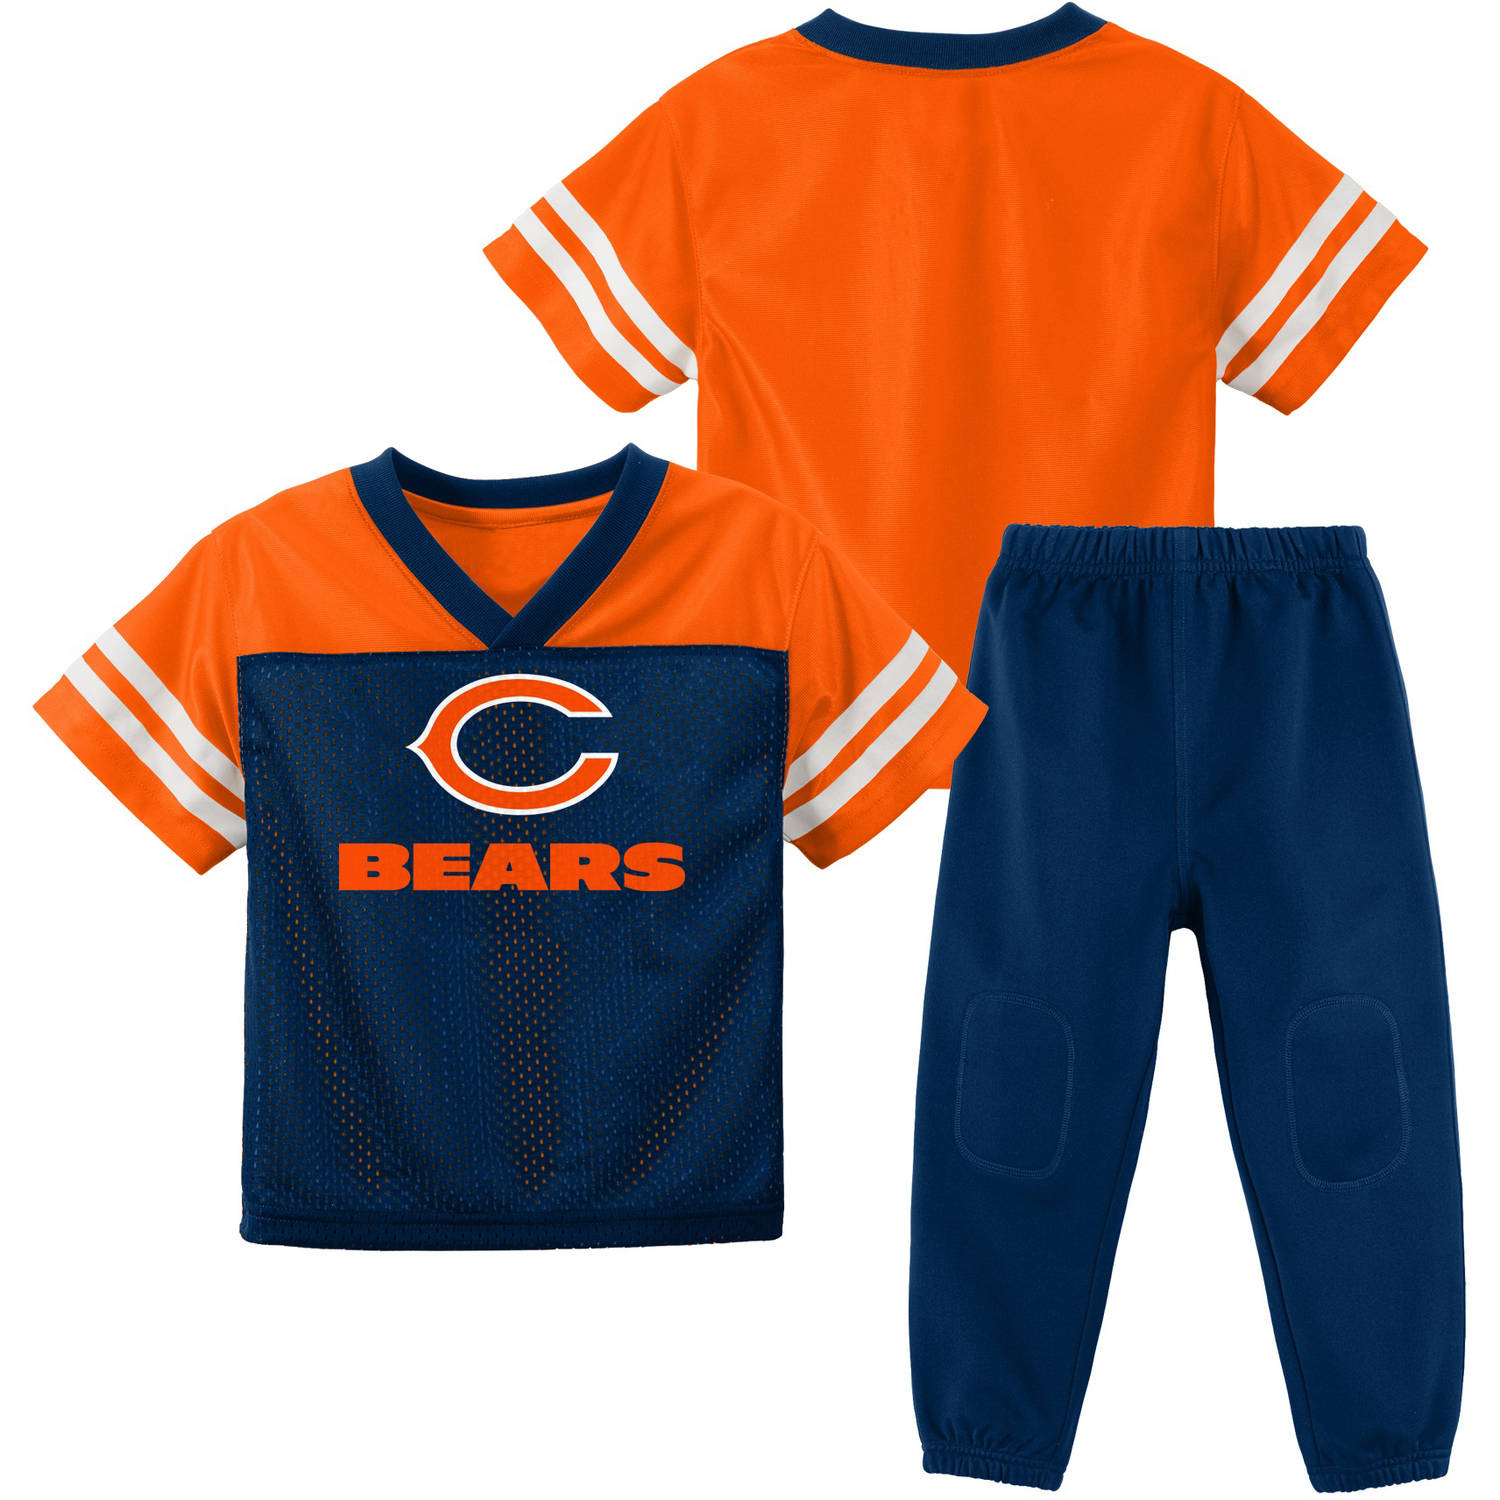 NFL Chicago Bears Toddler Short Sleeve Top and Pant Set